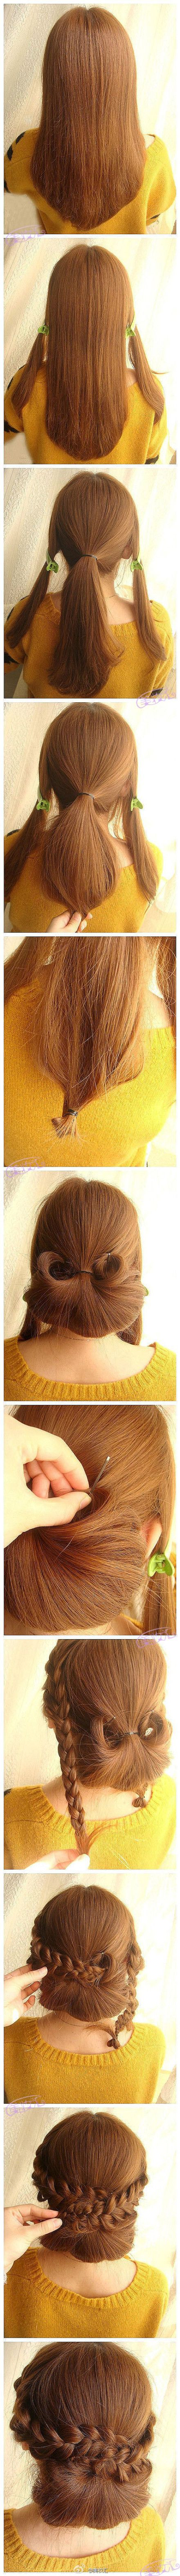 cute and a cool new way to try a chignon!